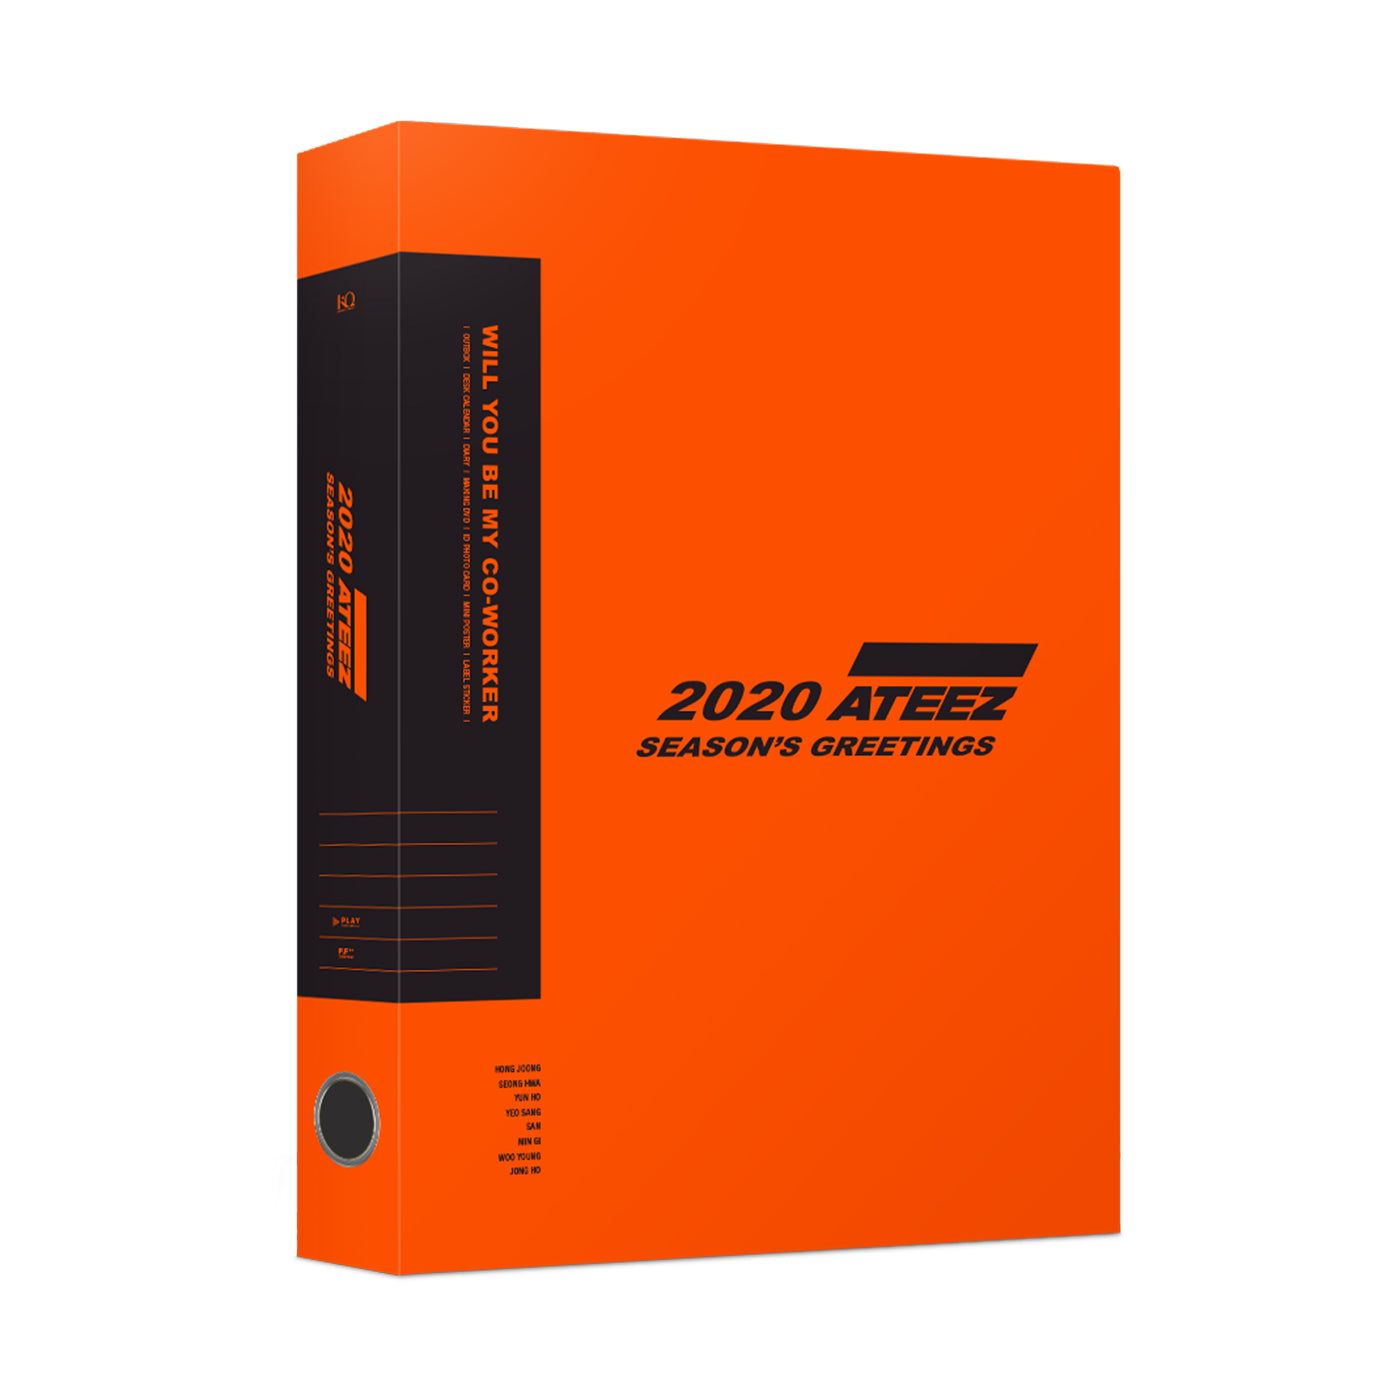 ATEEZ '2020 SEASON'S GREETINGS'